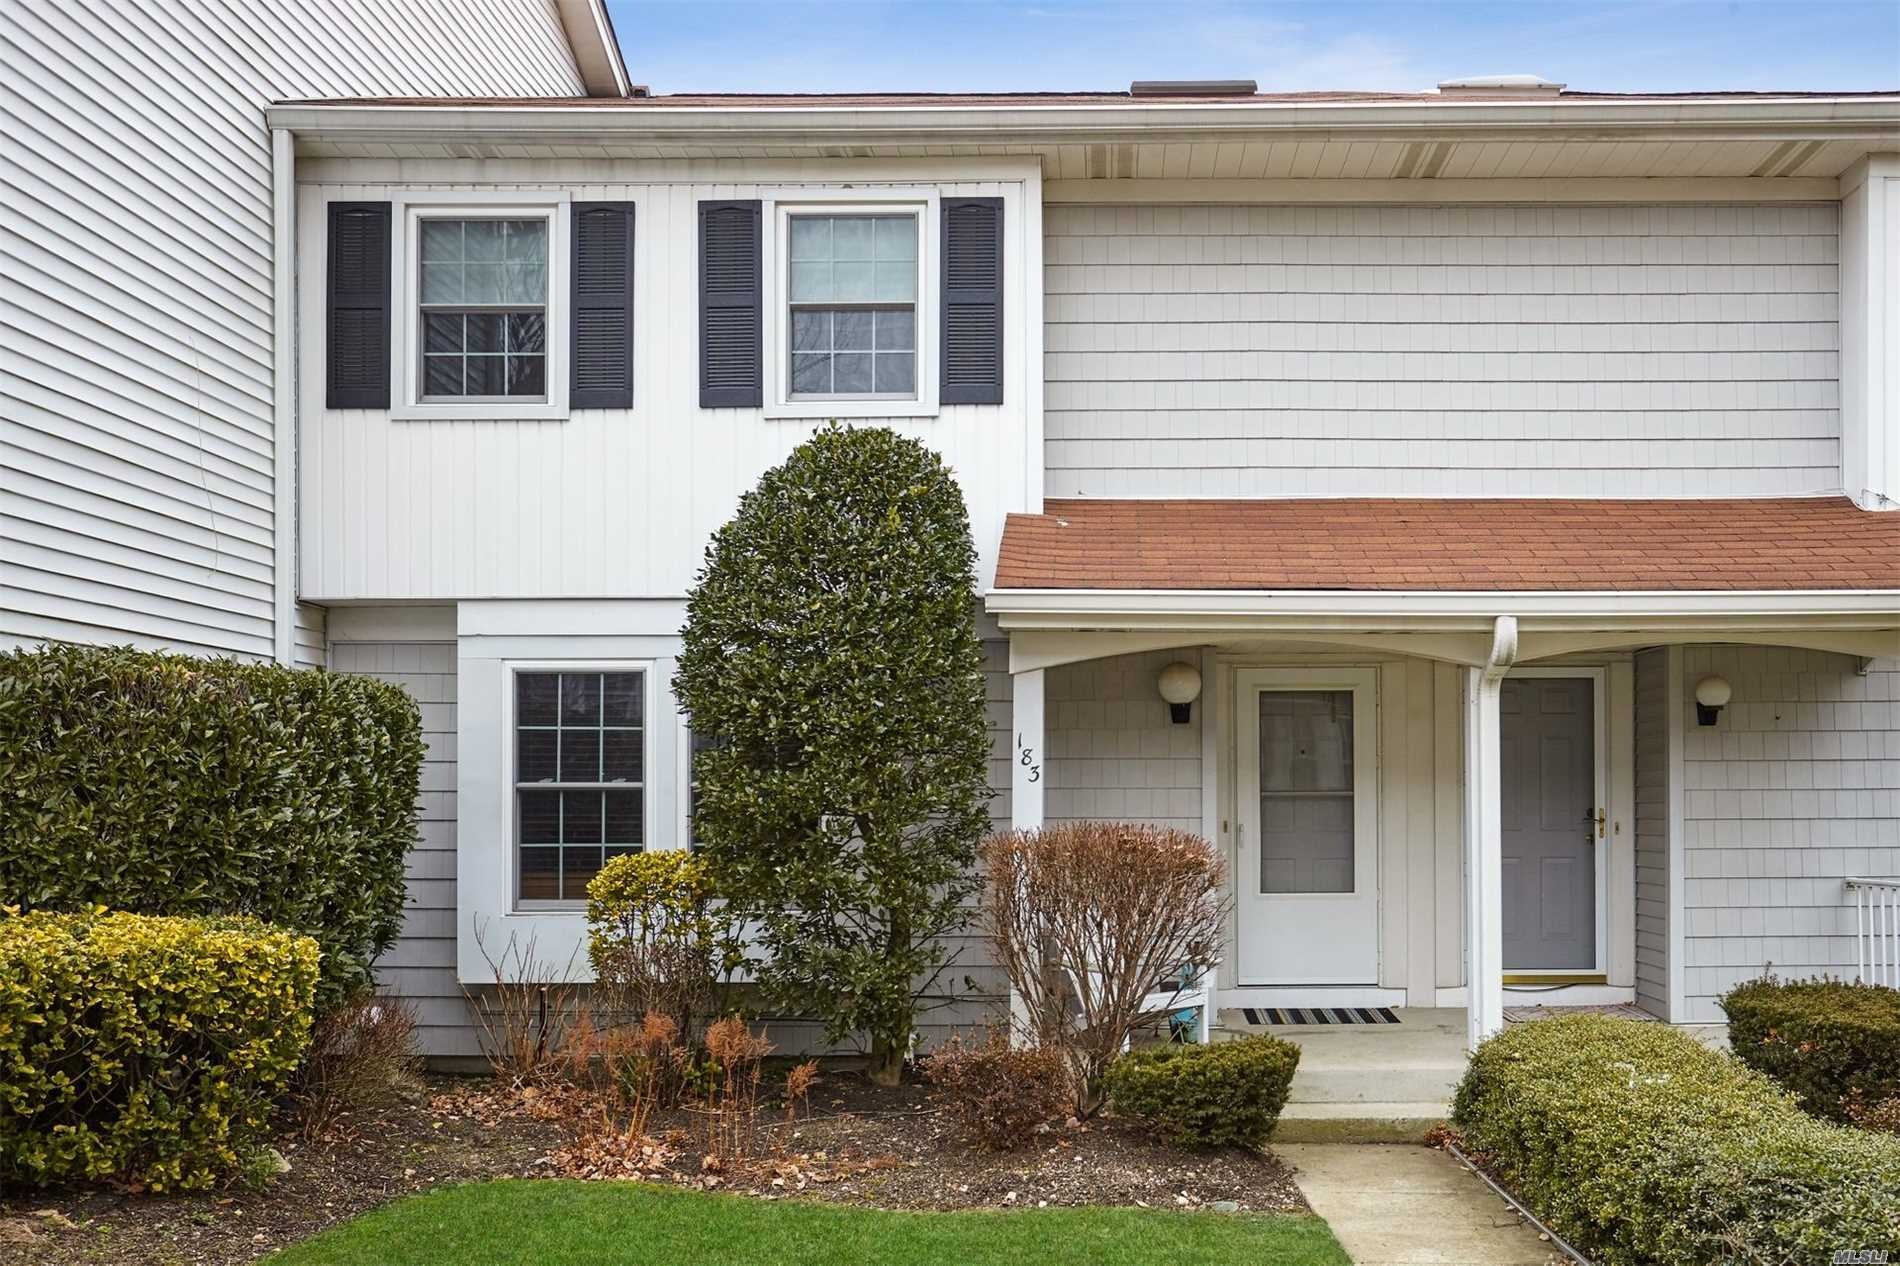 Taxes Grieved! South Facing Open Glade Model With Updated Eik W/Ss App., Granite And Sliders To Deck. O'sized Liv.Room W/Frplc And Moldings. 2 Equal Size Bedrooms And Master W/Huge Wic And Full Bath. Walk Out Finished Basement W/Office, Den, Storage W/ Heat/Ac. Windows Replaced And Most Appliances 2 Yrs Old. Comm. Has Tennis/Pool/Clubhse/Plygrnd. Sale May Be Subject To Term & Conditions Of An Offering Plan.